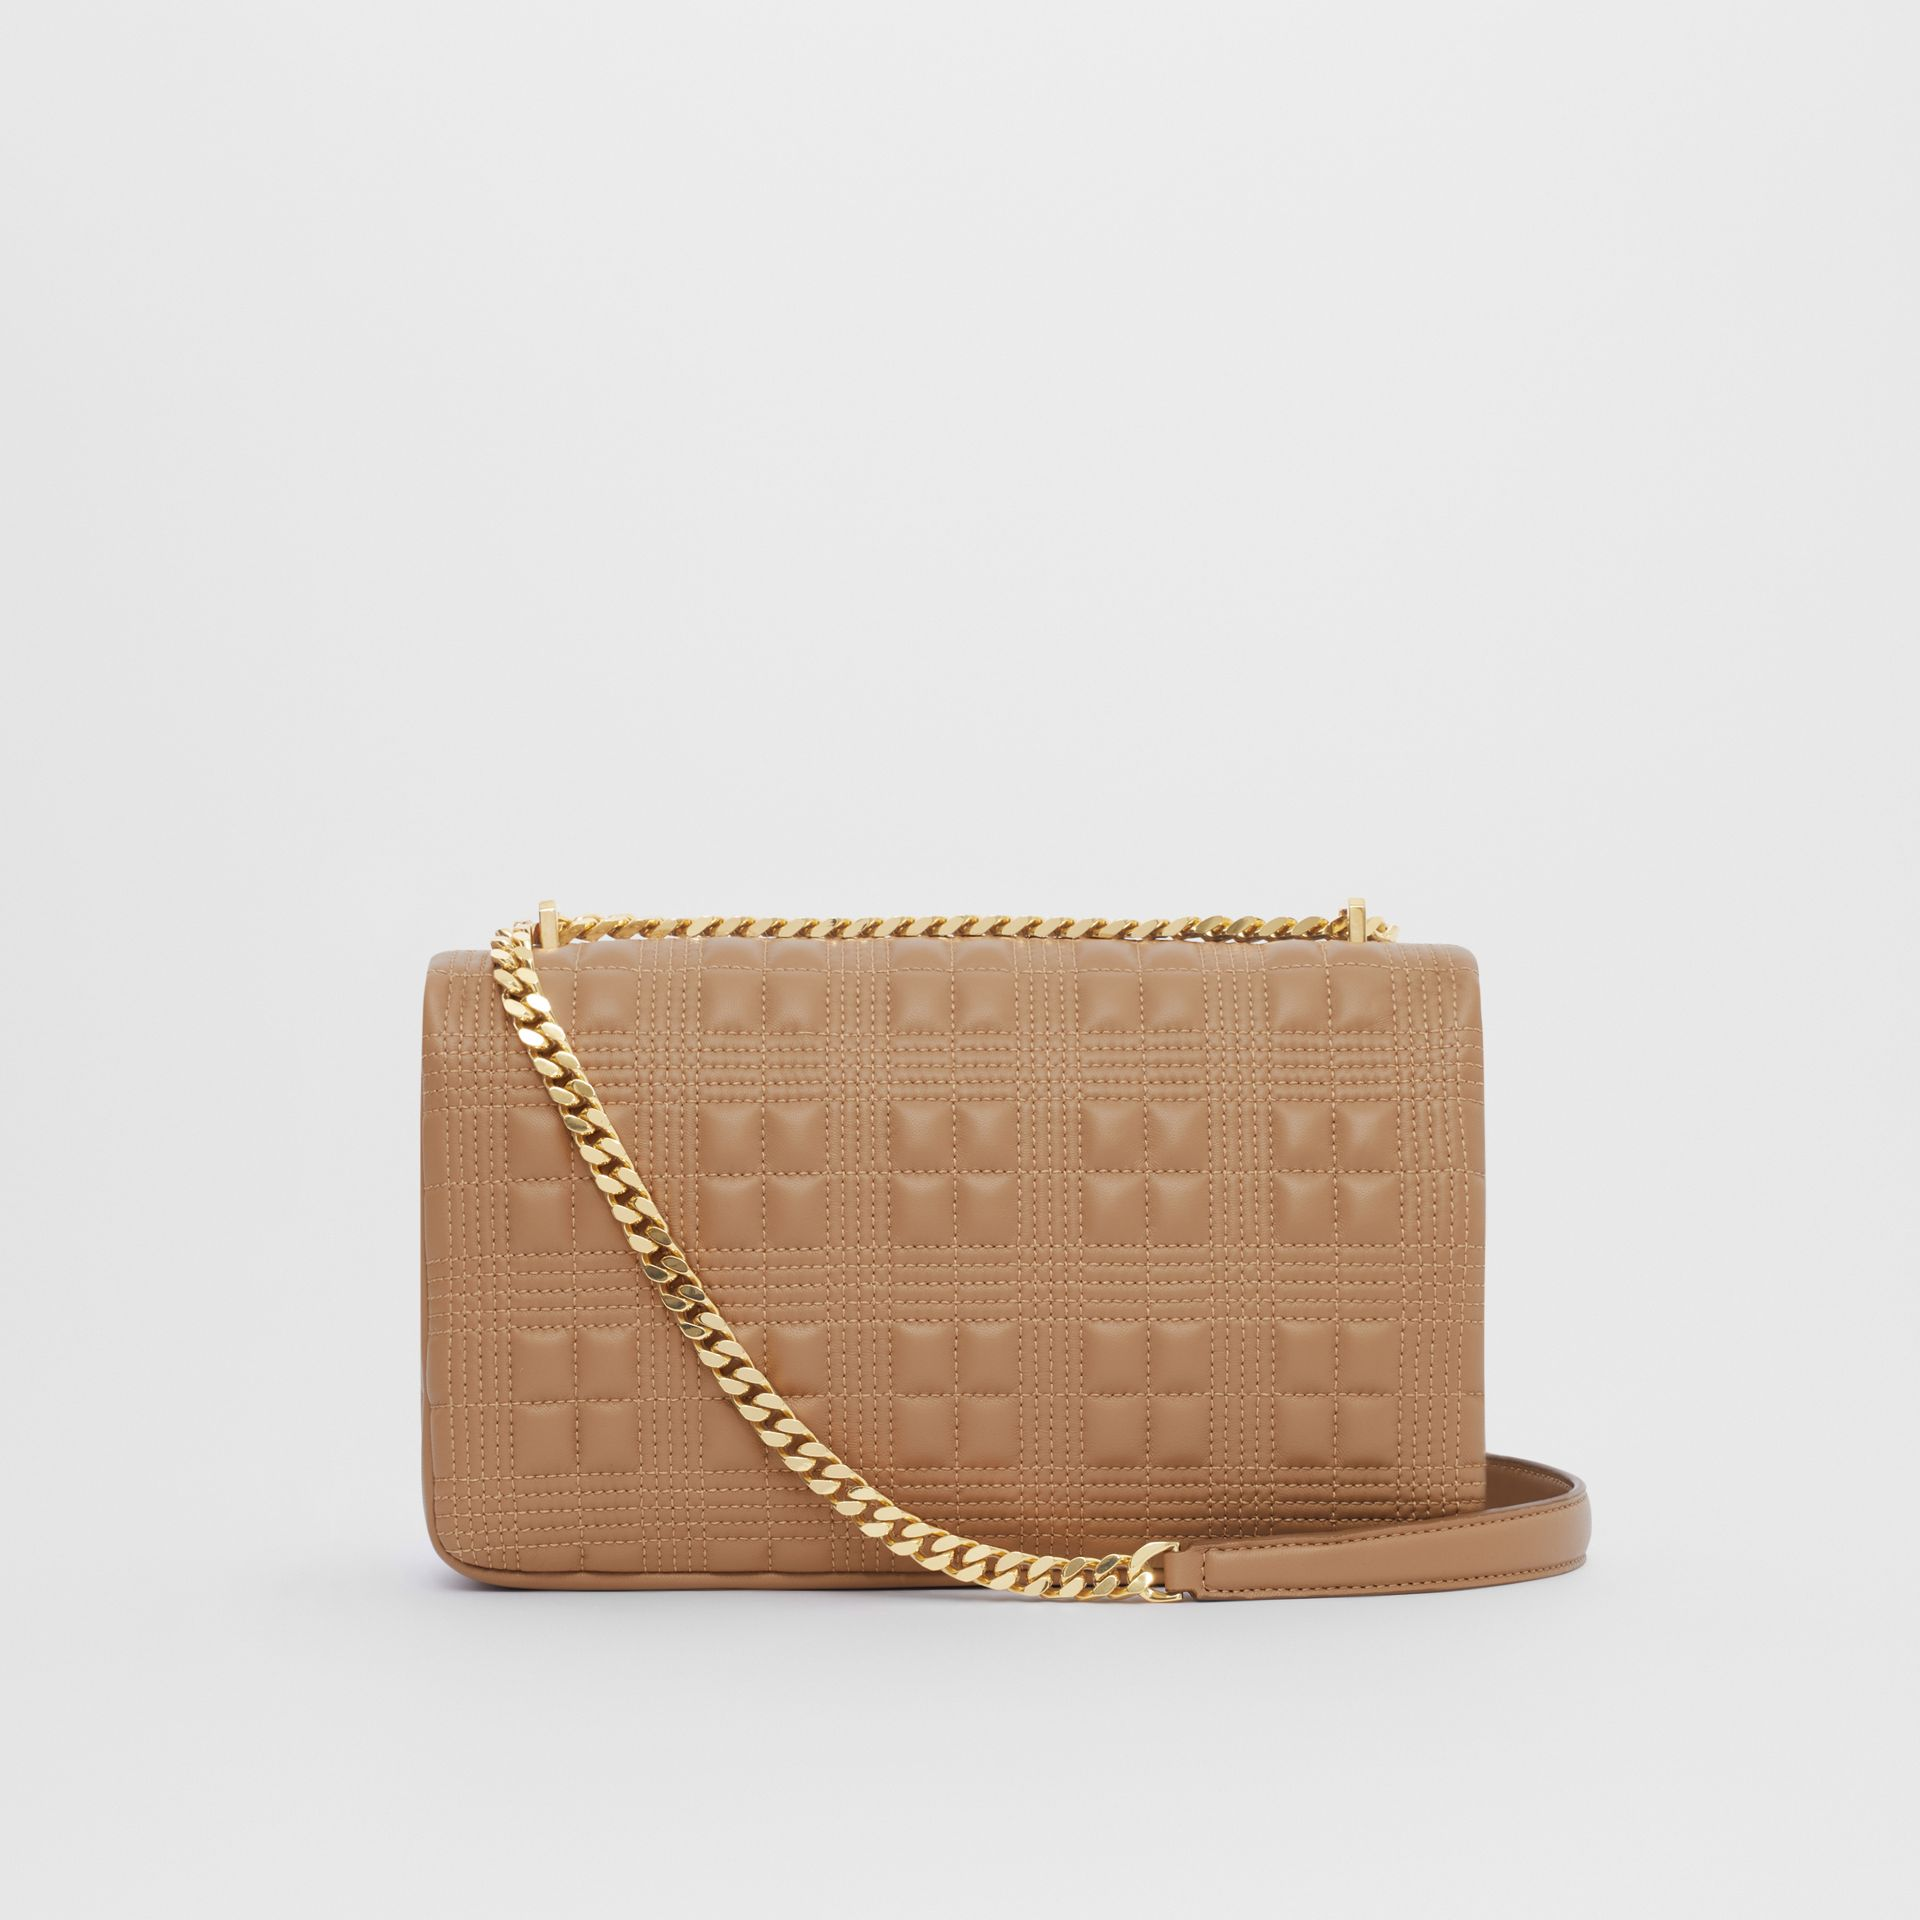 Medium Quilted Lambskin Lola Bag in Camel/light Gold - Women | Burberry Australia - gallery image 7